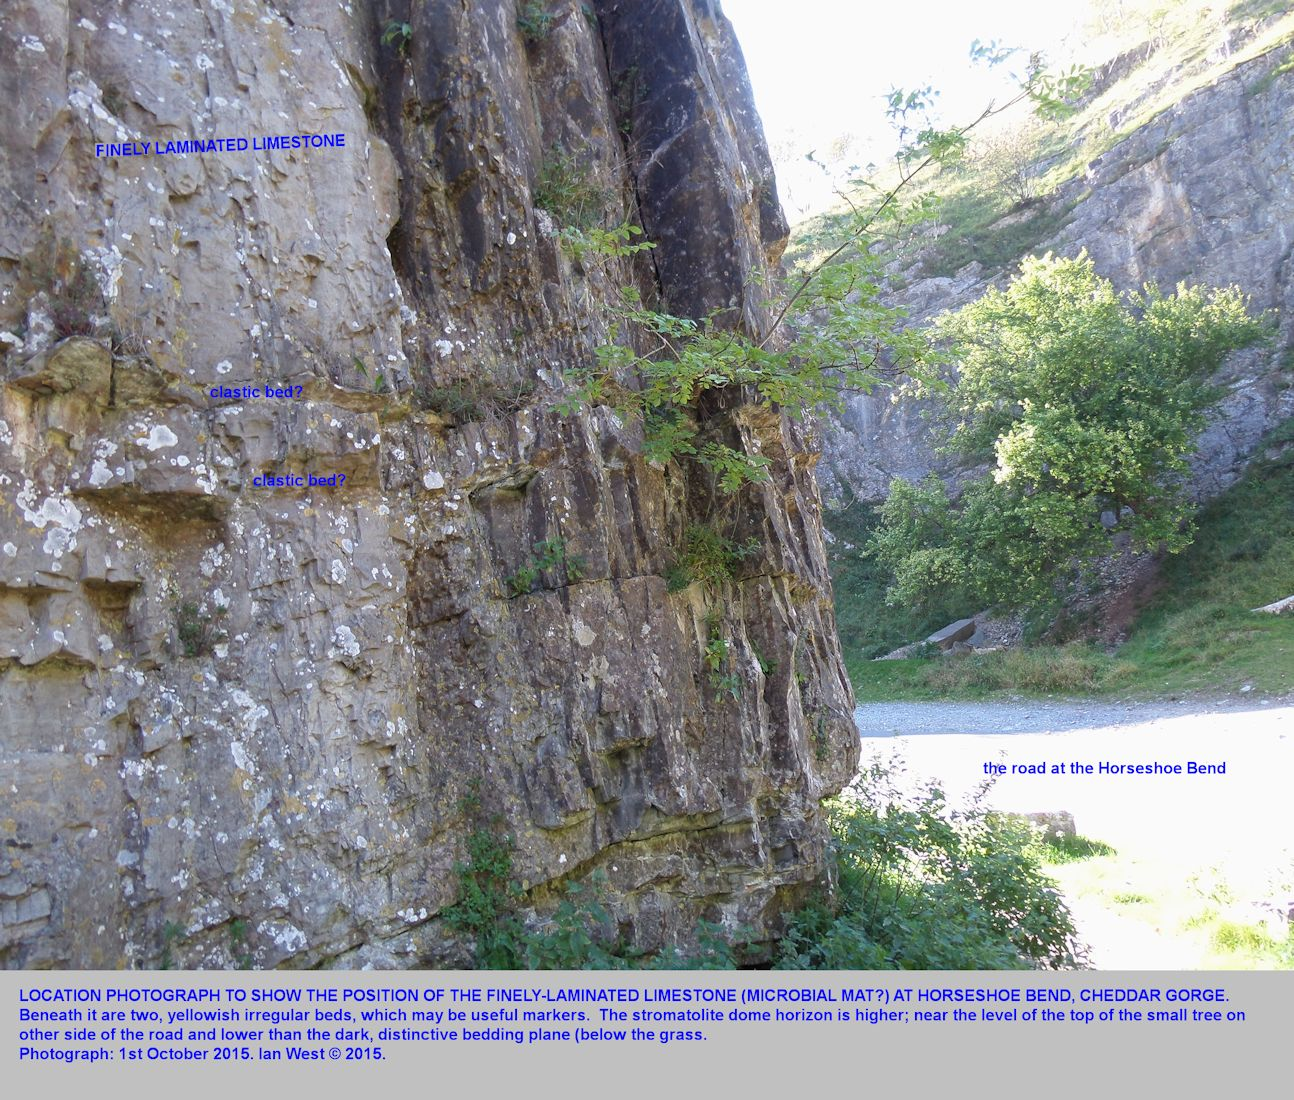 A location photograph to show the position of the finely laminated limestone at Horseshoe Bend, Cheddar Gorge, Mendip Hills, Somerset, 1st October 2015